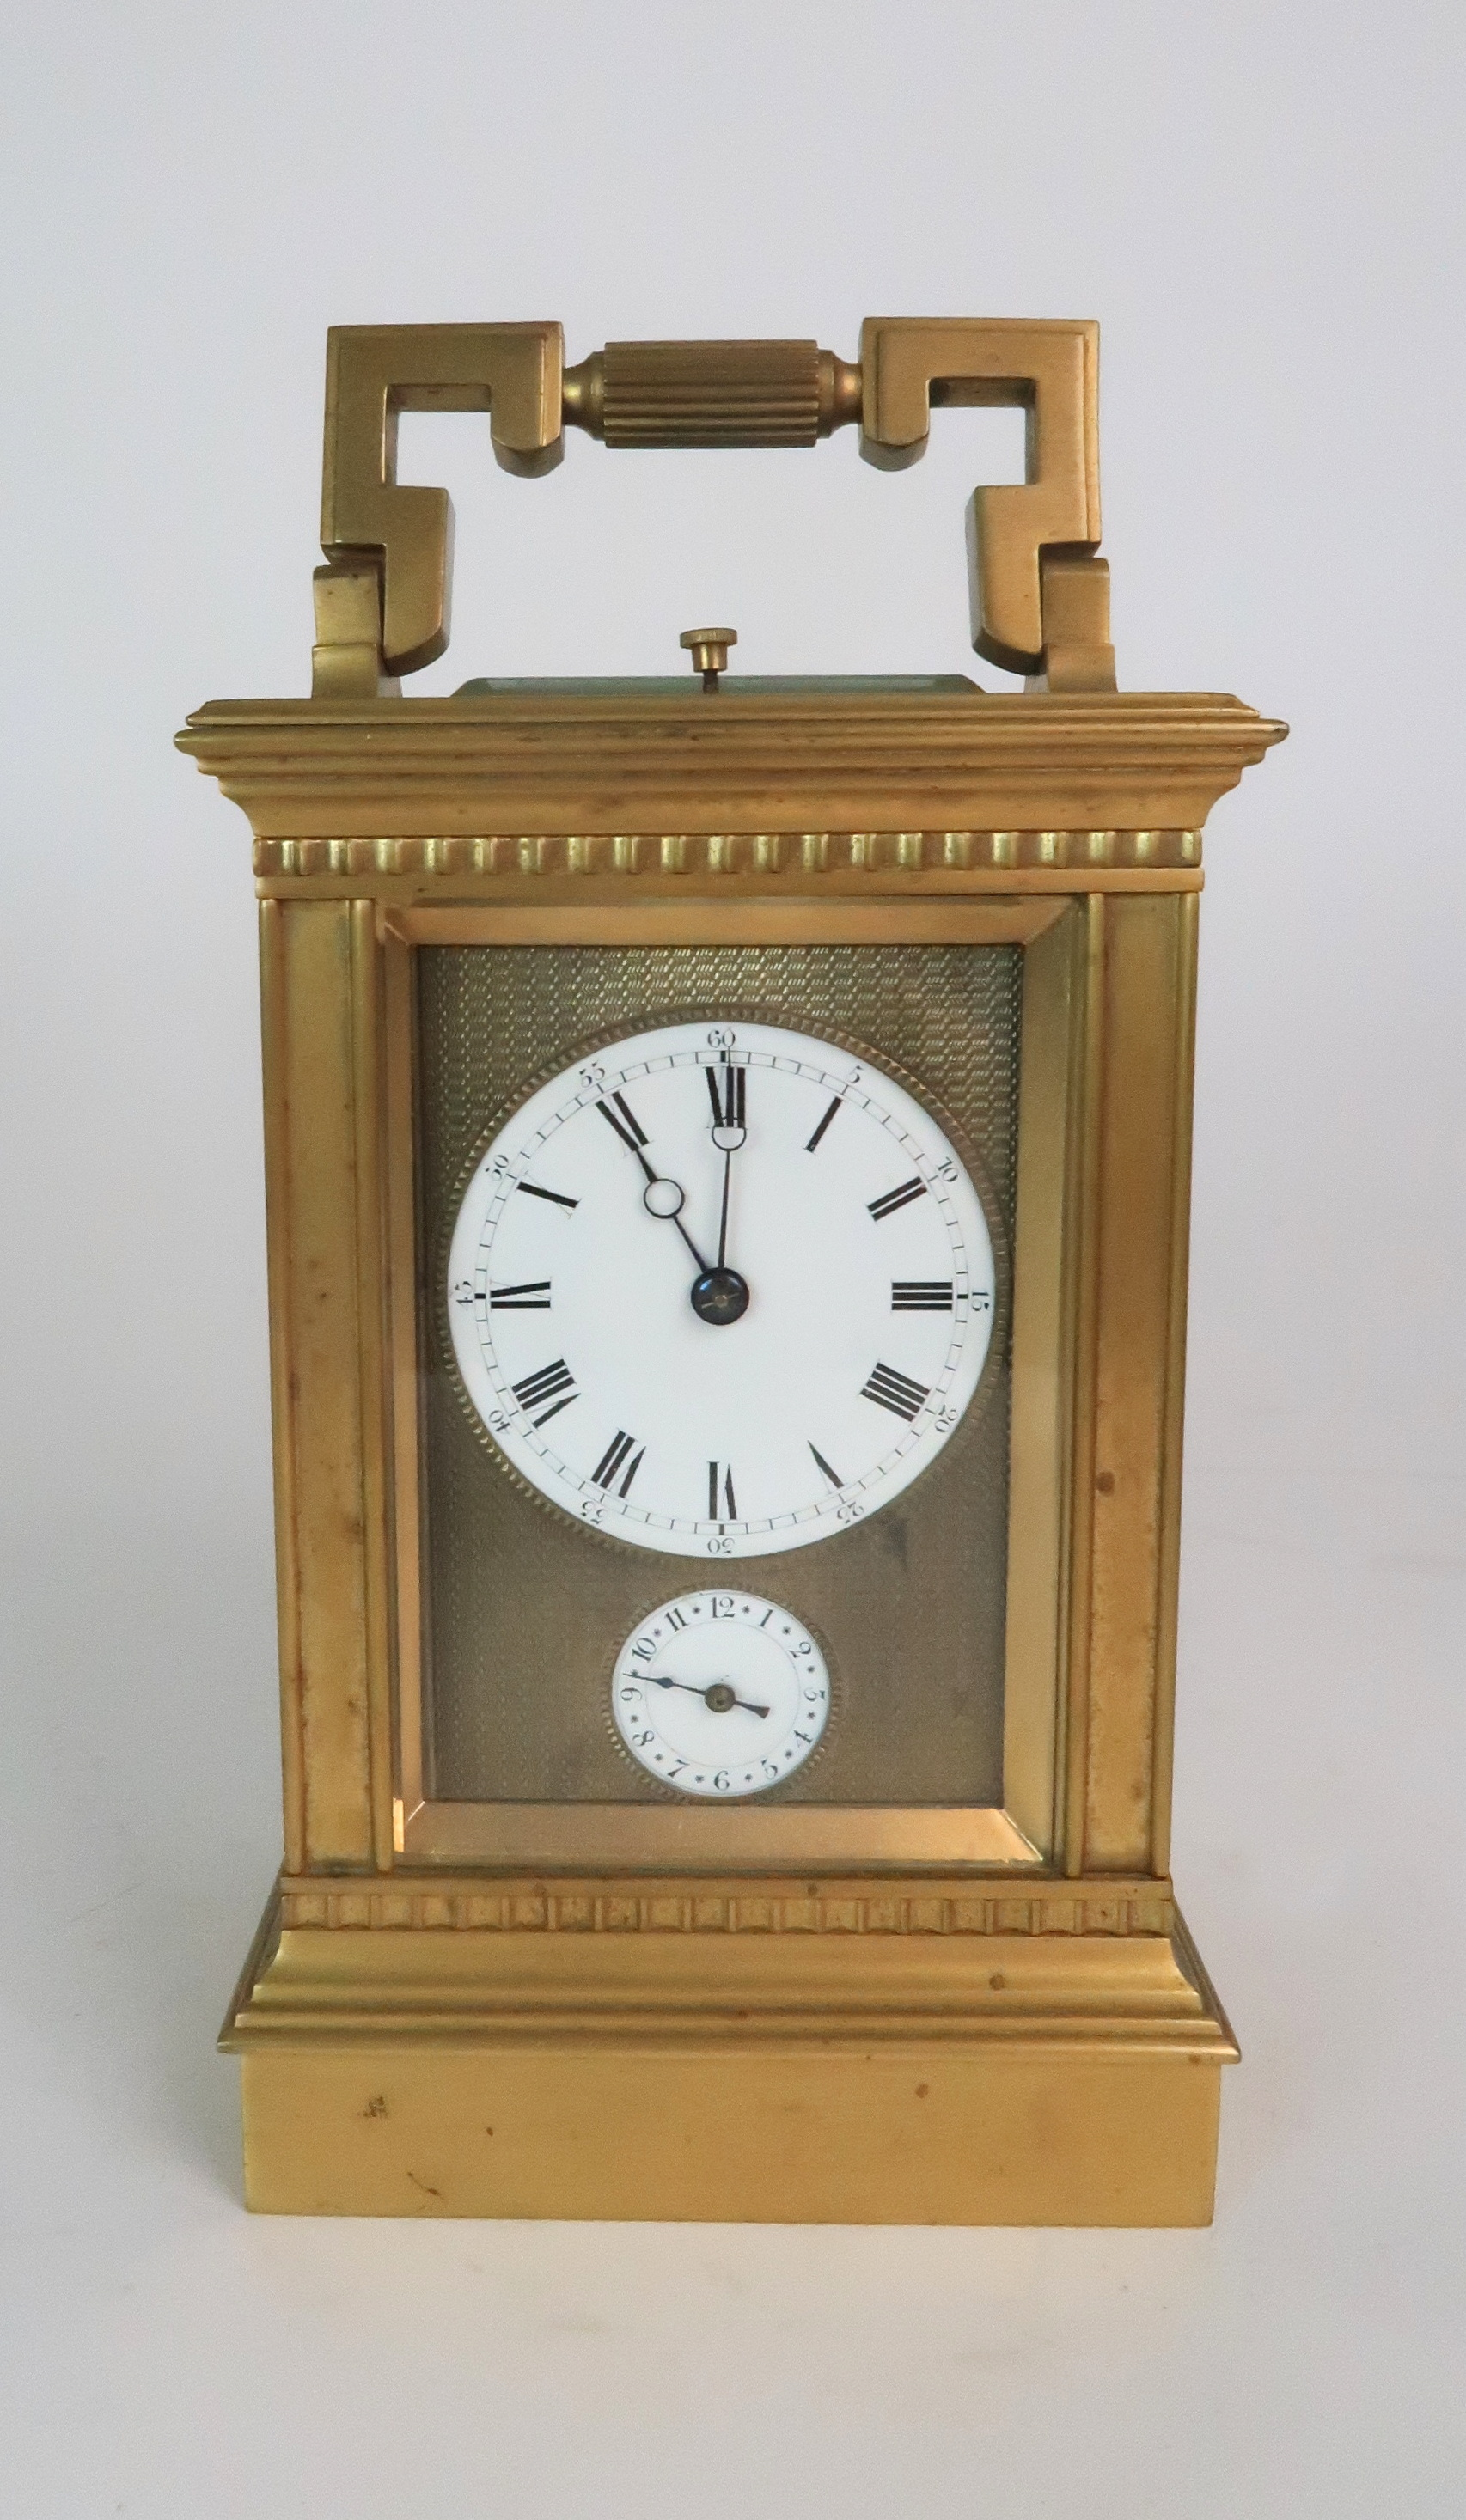 A FRENCH BRASS AND GLASS REPEATER CARRIAGE CLOCK the enamel dial with Roman numerals, with